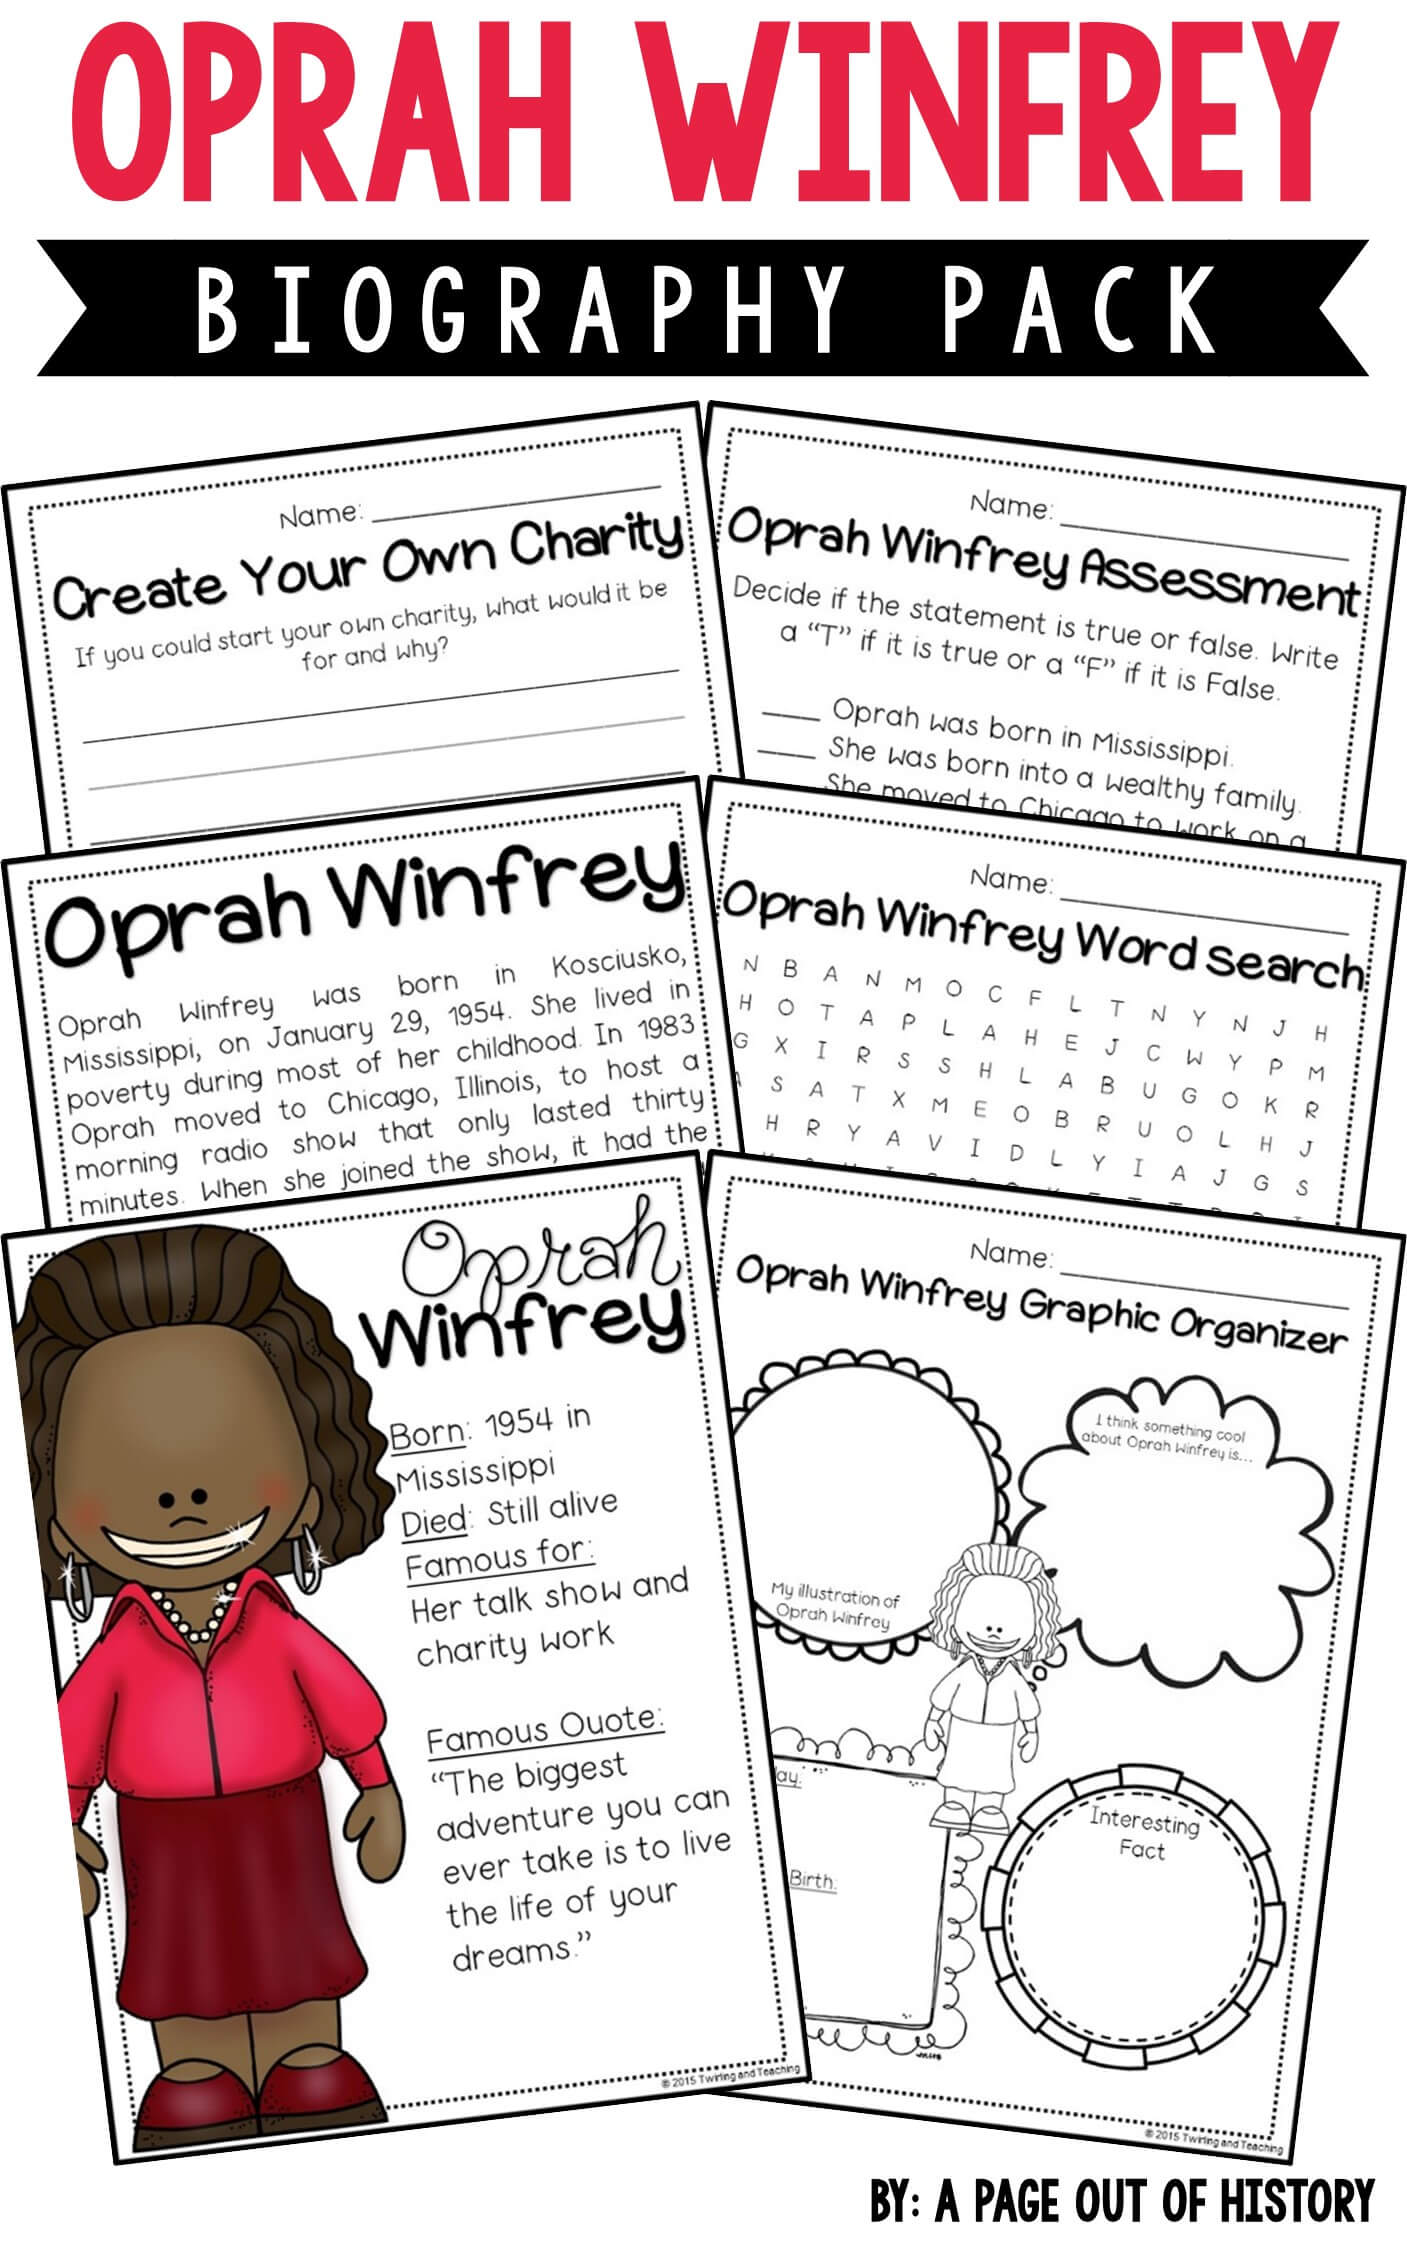 hight resolution of Oprah Winfrey Biography Pack (Women's History) - A Page Out of History